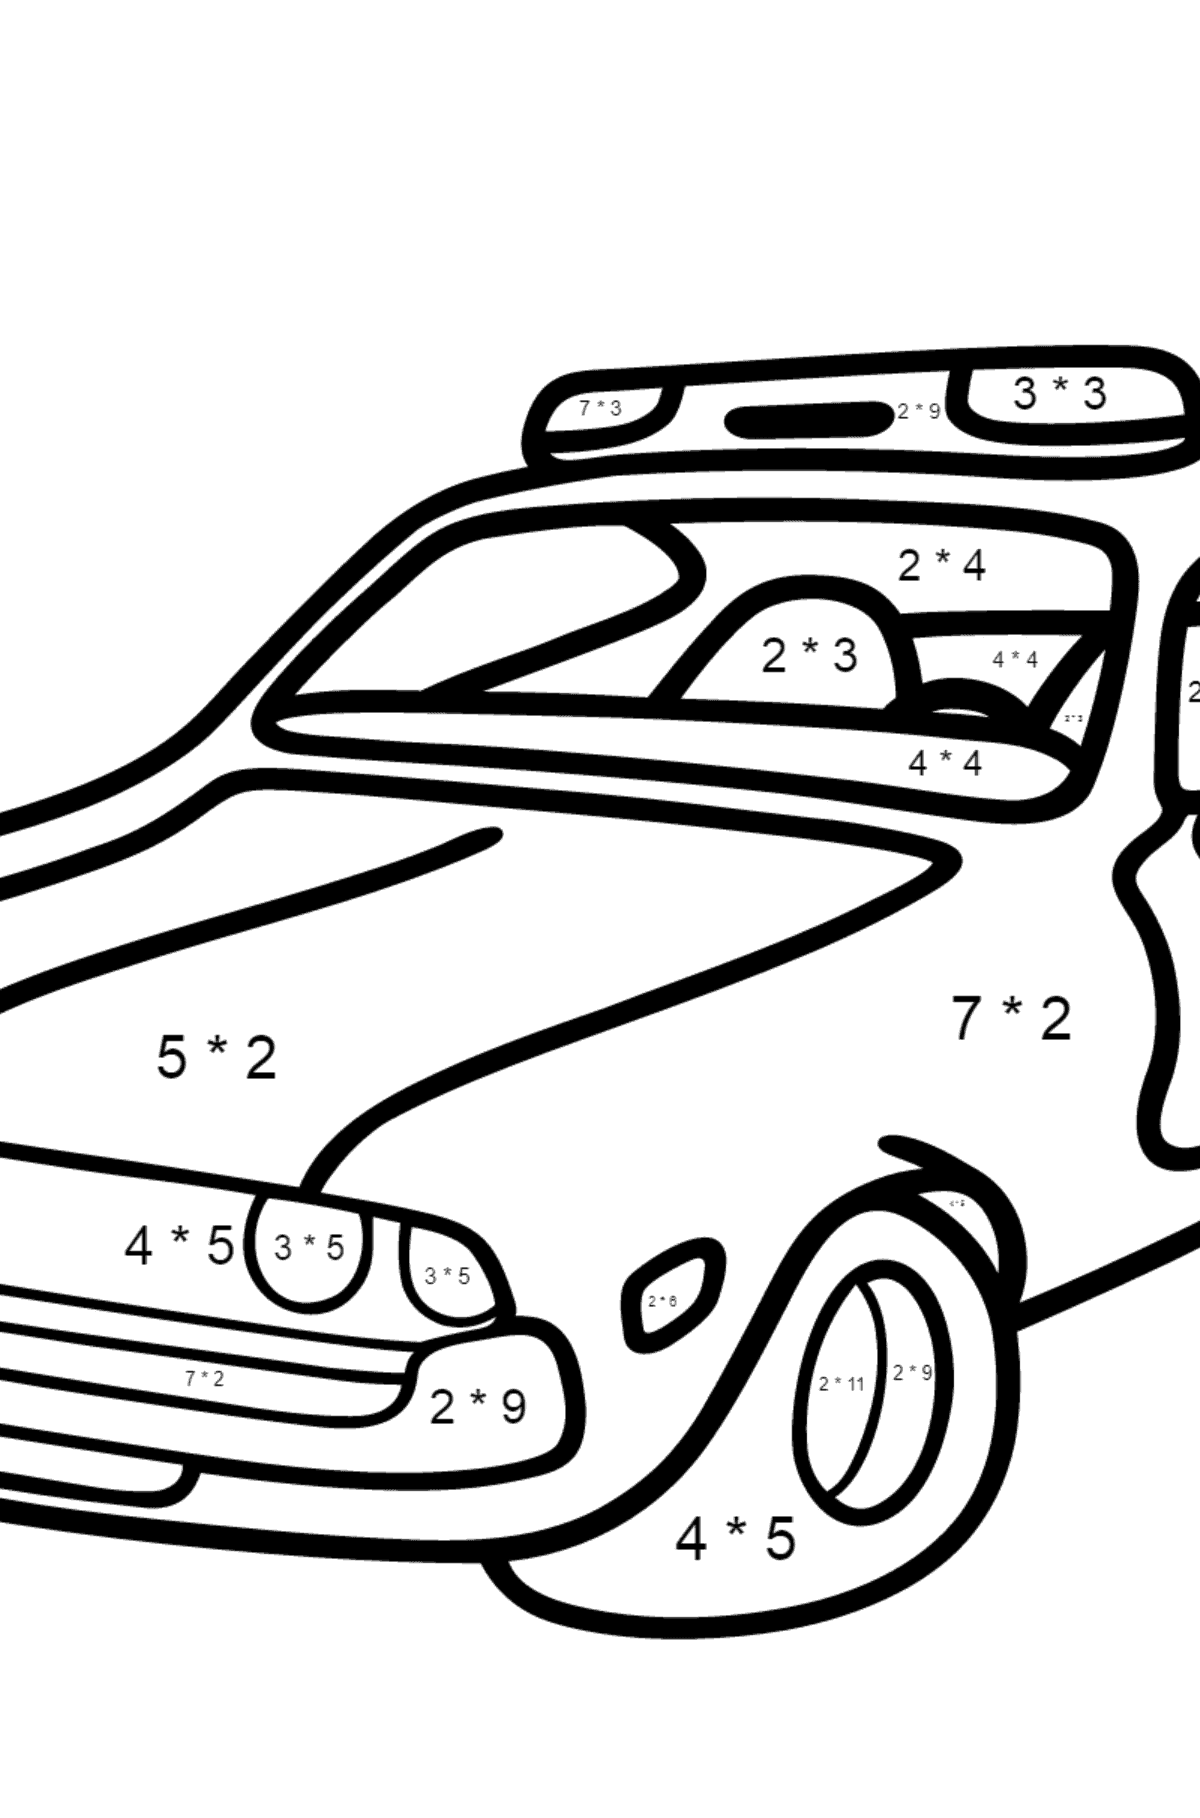 Coloring Page - A Dark Gray Police Car for Kids  - Color by Number Multiplication